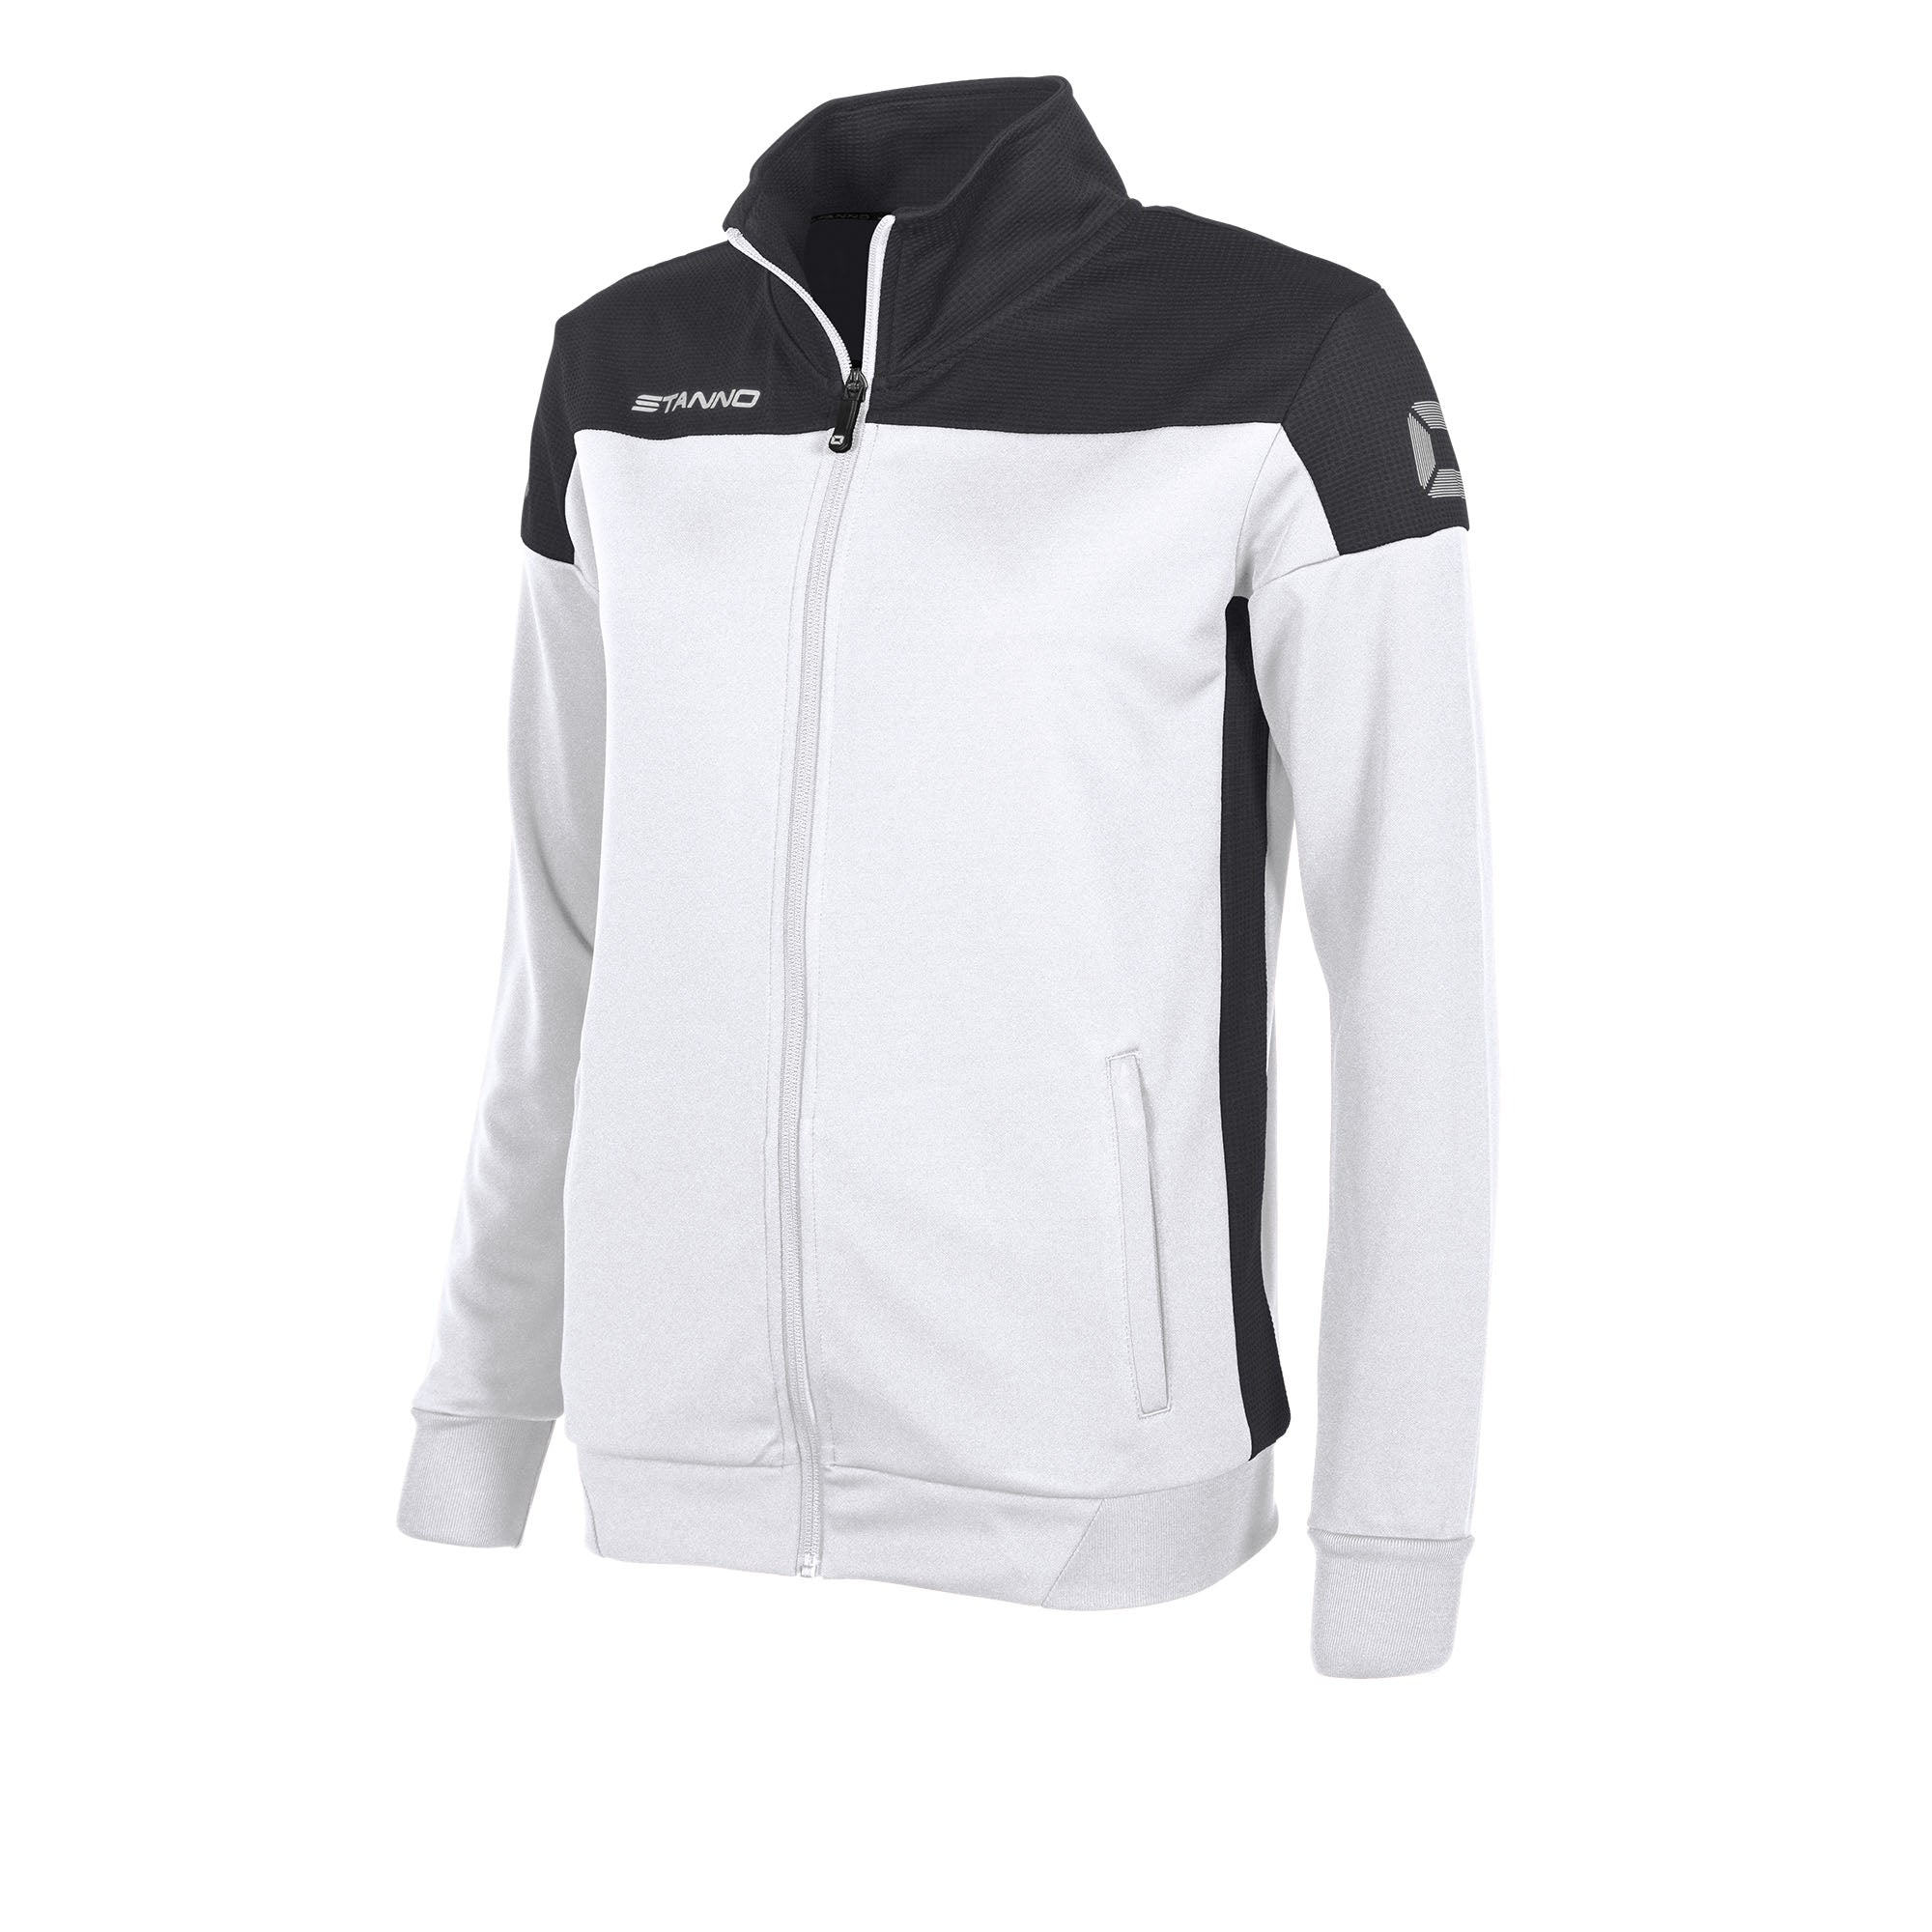 Stanno Pride TTS Jacket Ladies - White/Black